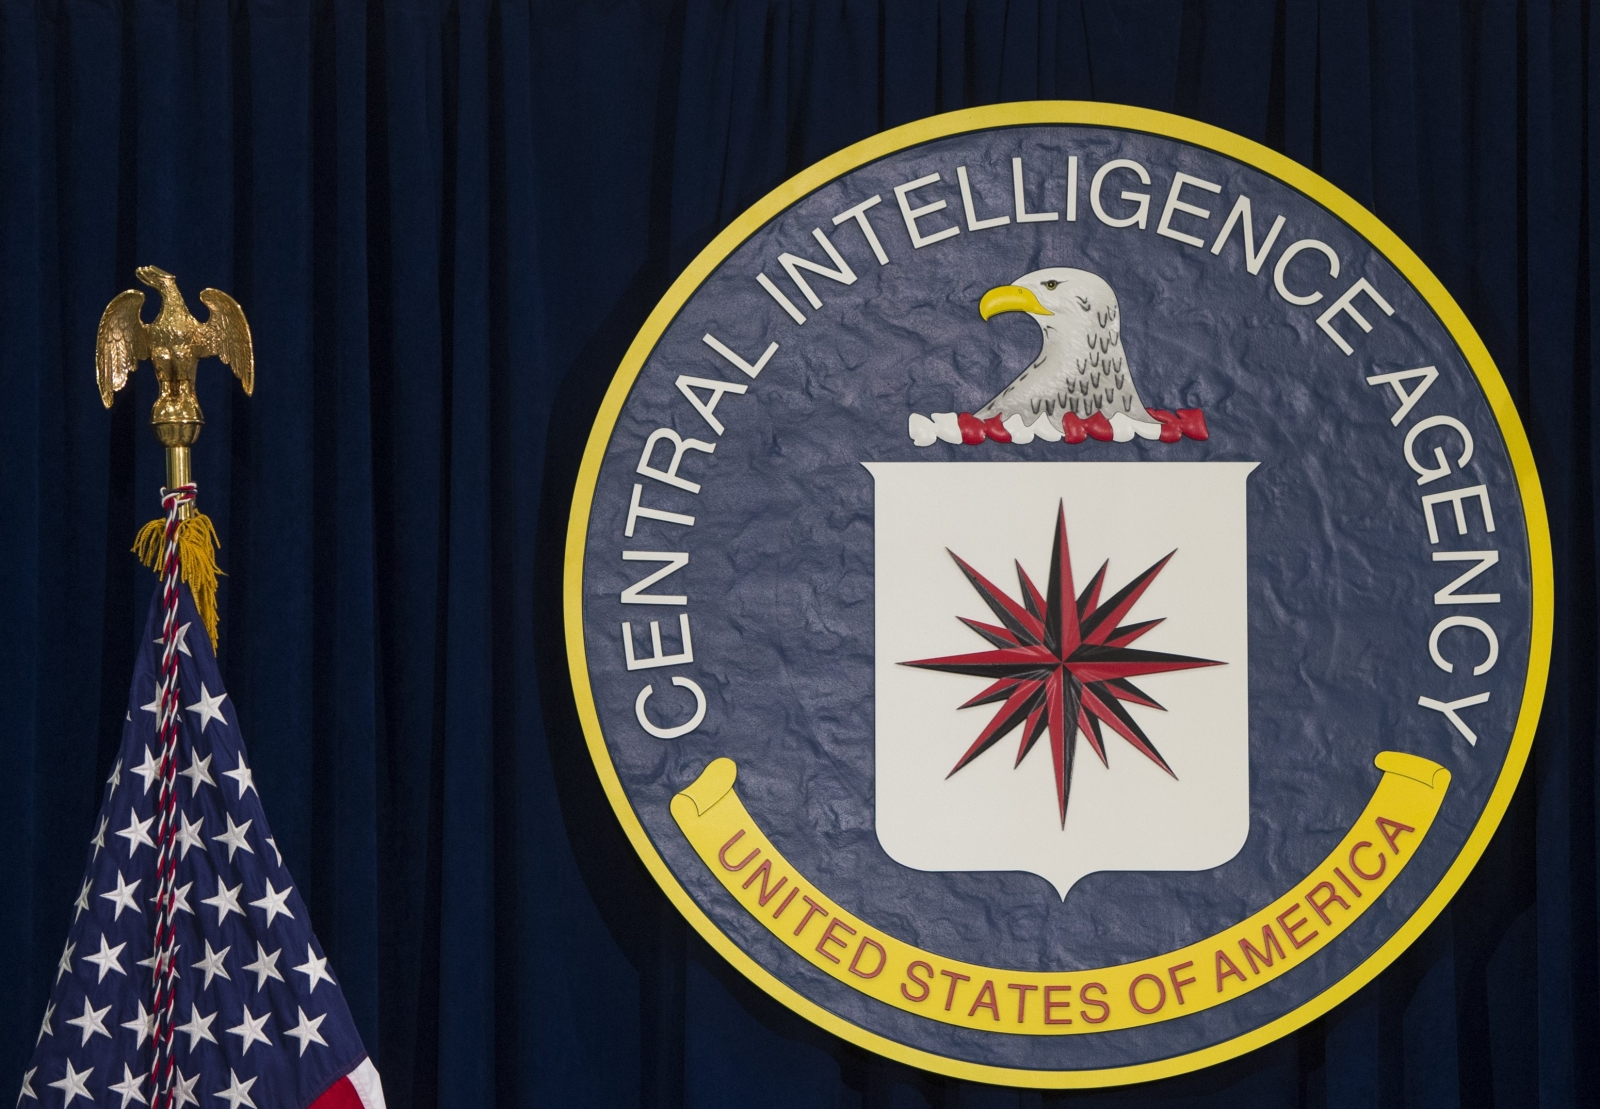 CIA hacking tools revealed by WikiLeaks